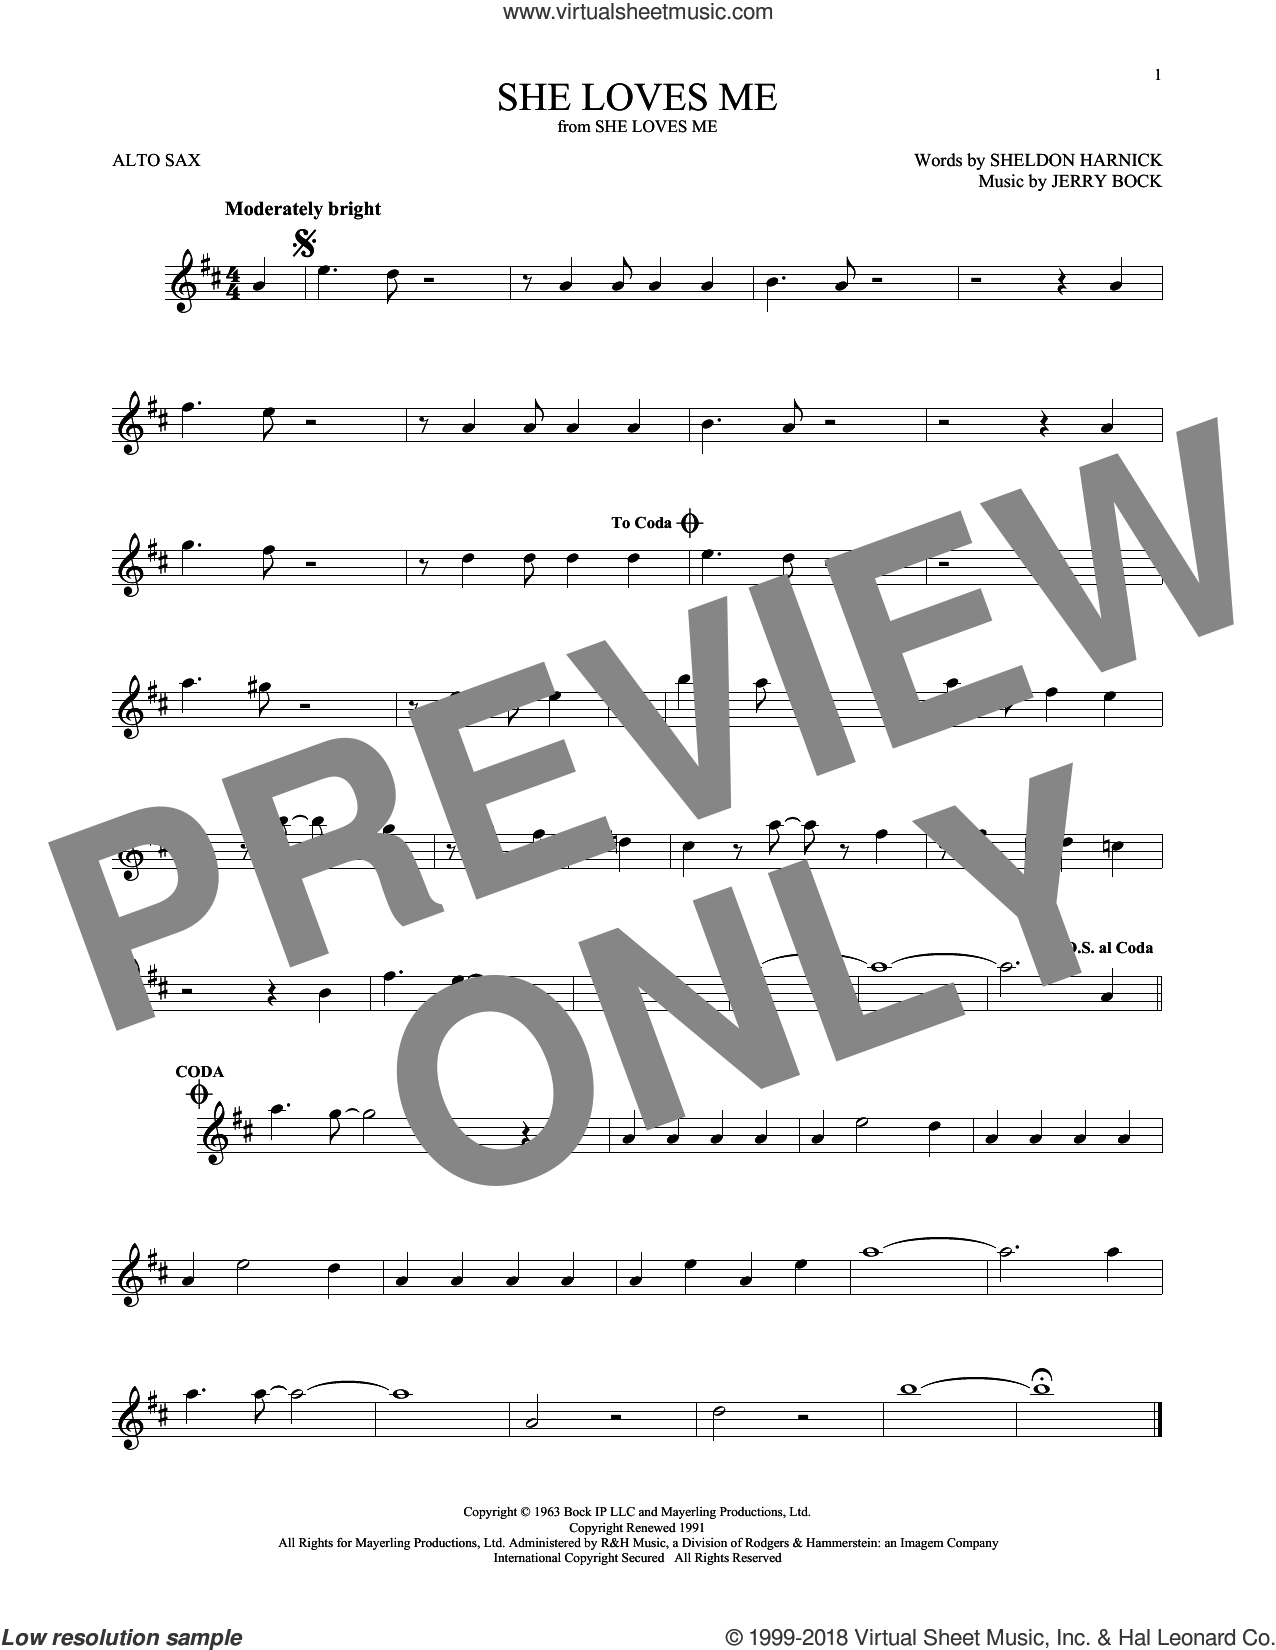 She Loves Me sheet music for alto saxophone solo by Jerry Bock and Sheldon Harnick, intermediate skill level